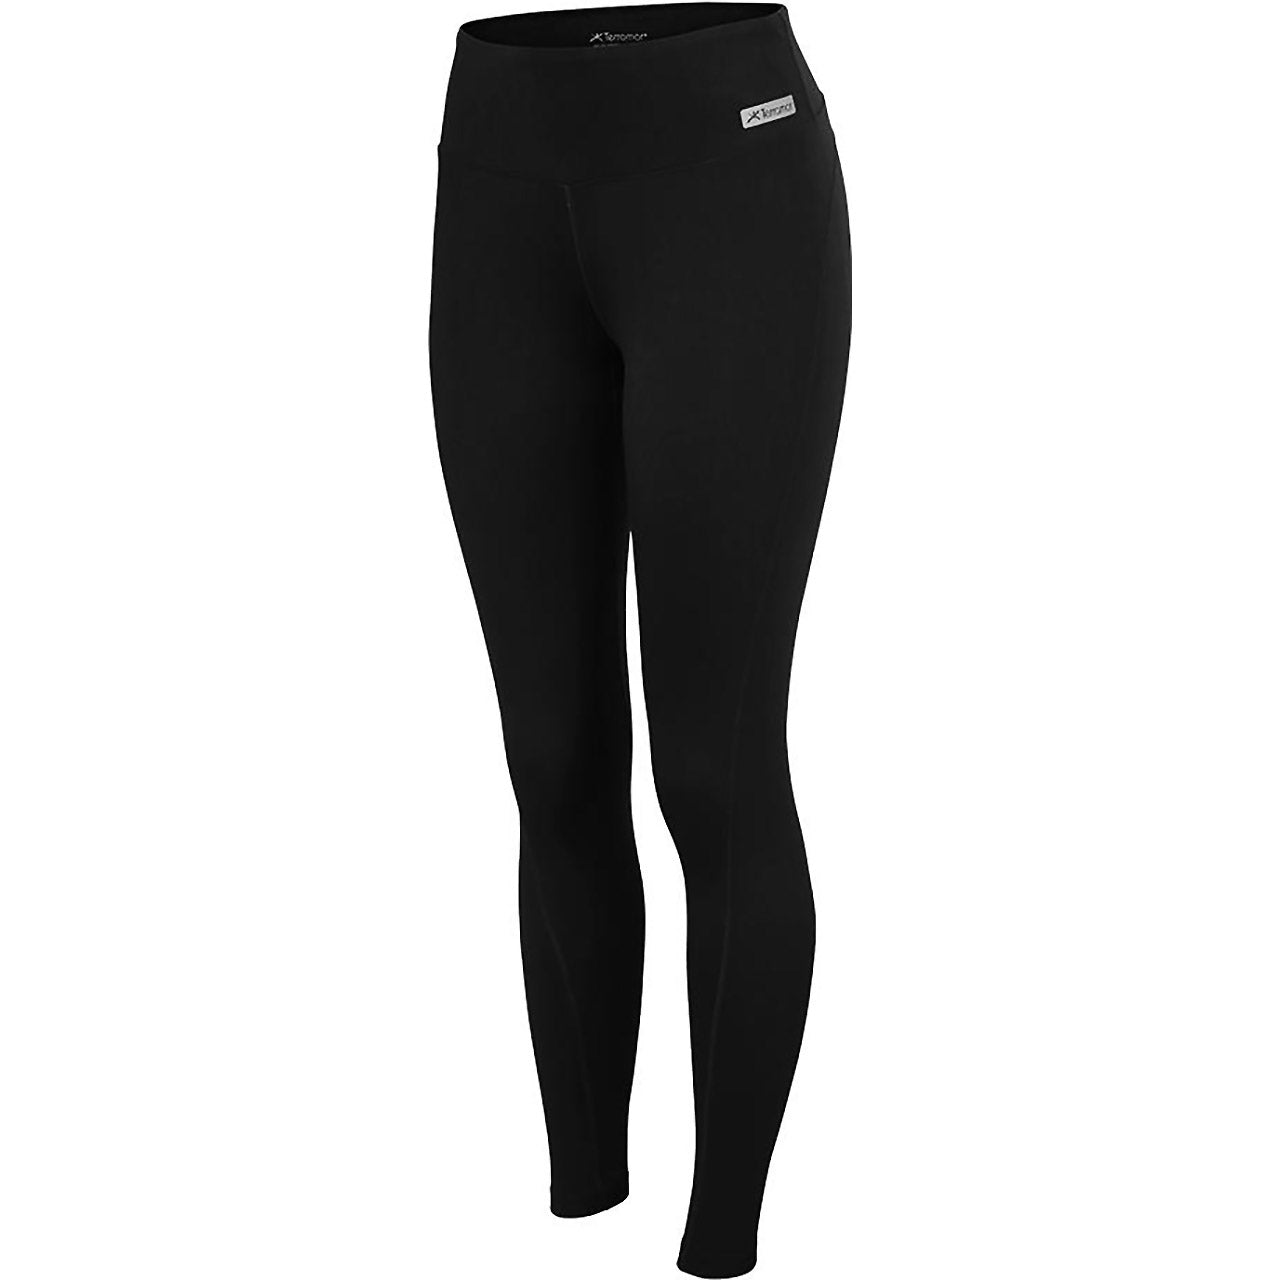 Terramar Cloud Nine Women's Baselayer Pant Black